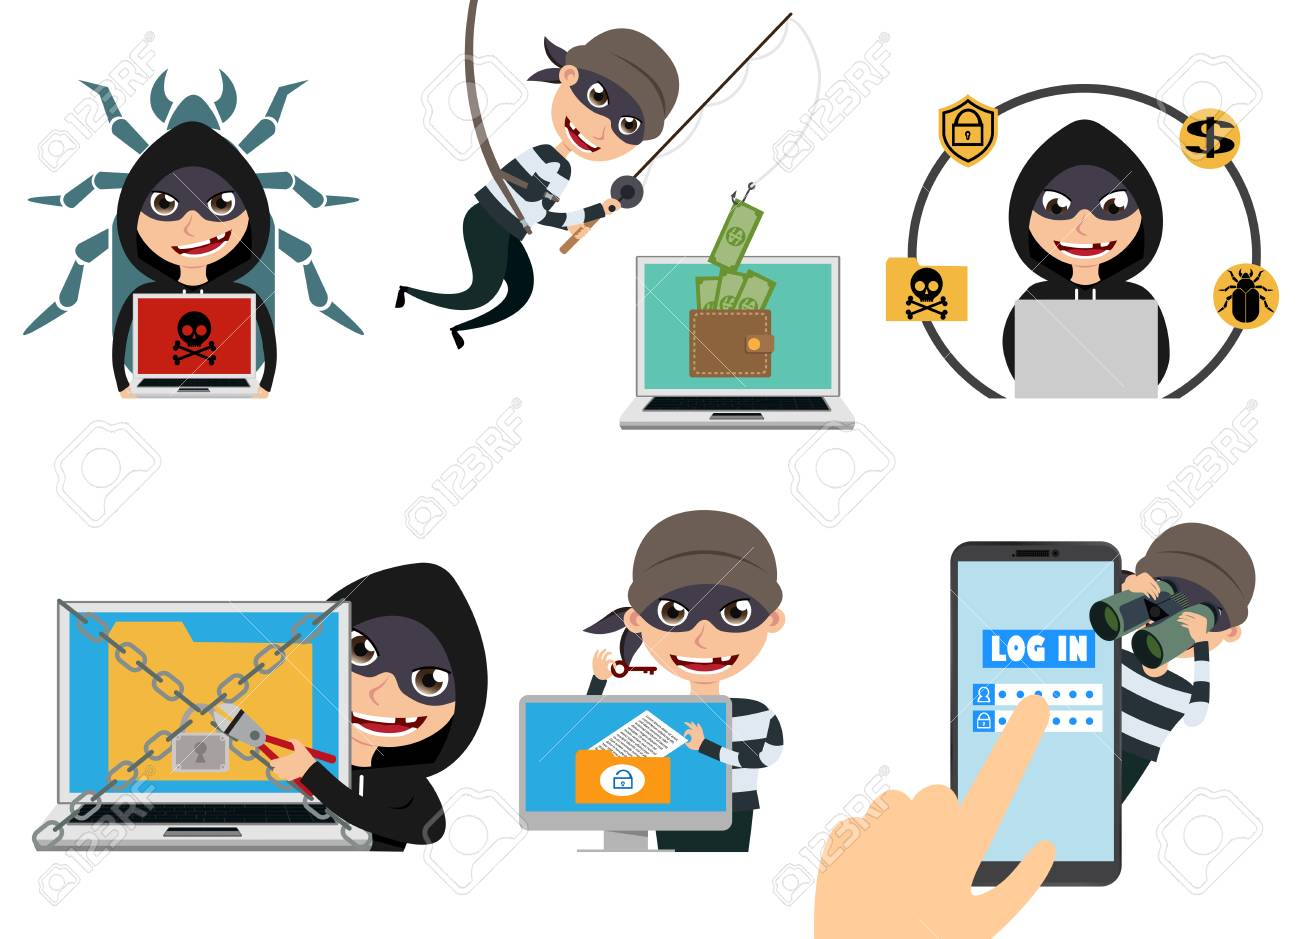 Cyber security hacker vector character set  Thief hacking computer